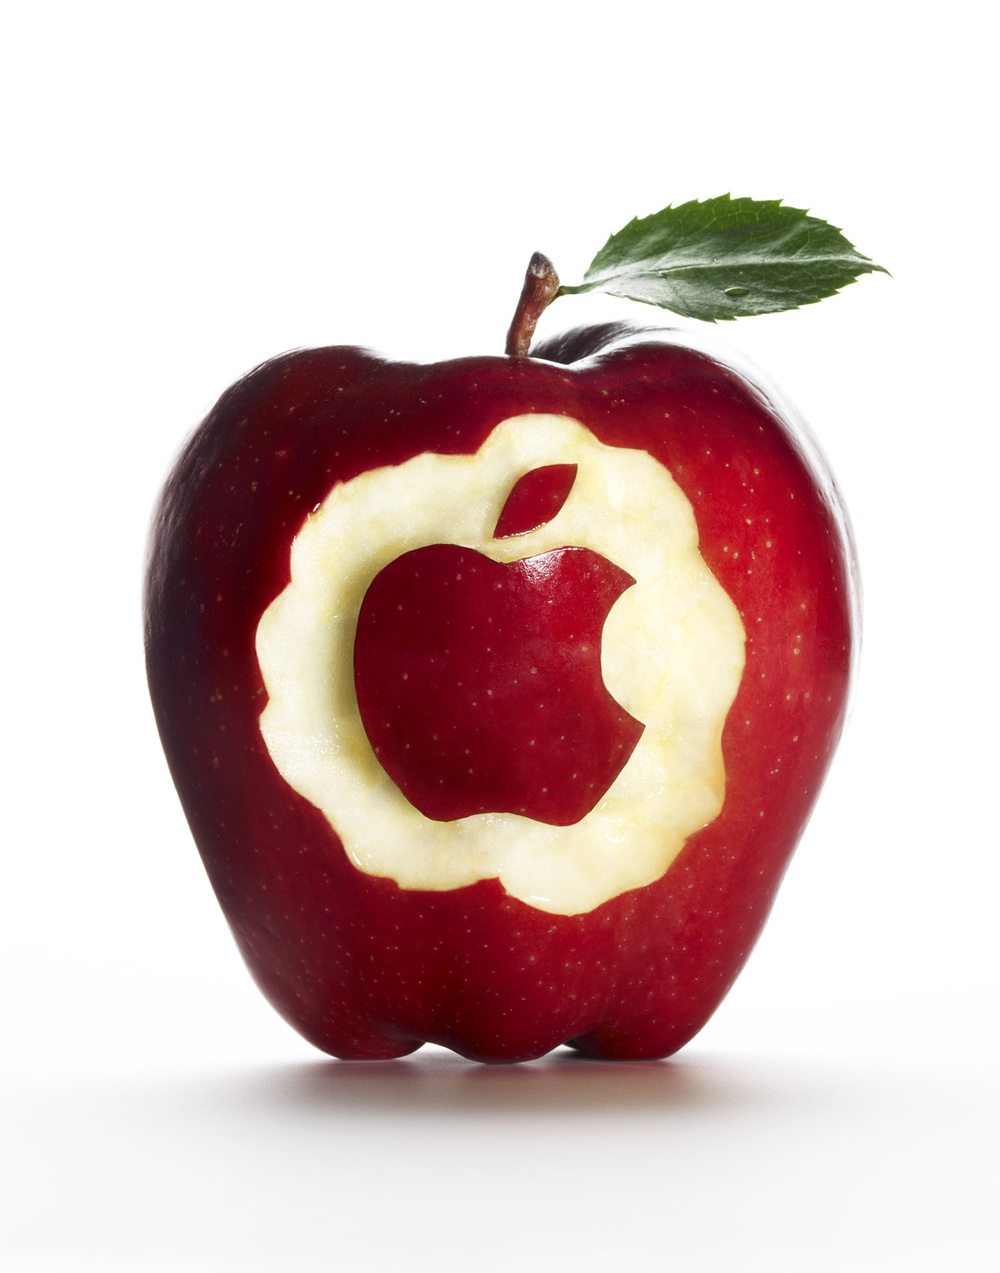 17AppleLogo.jpeg